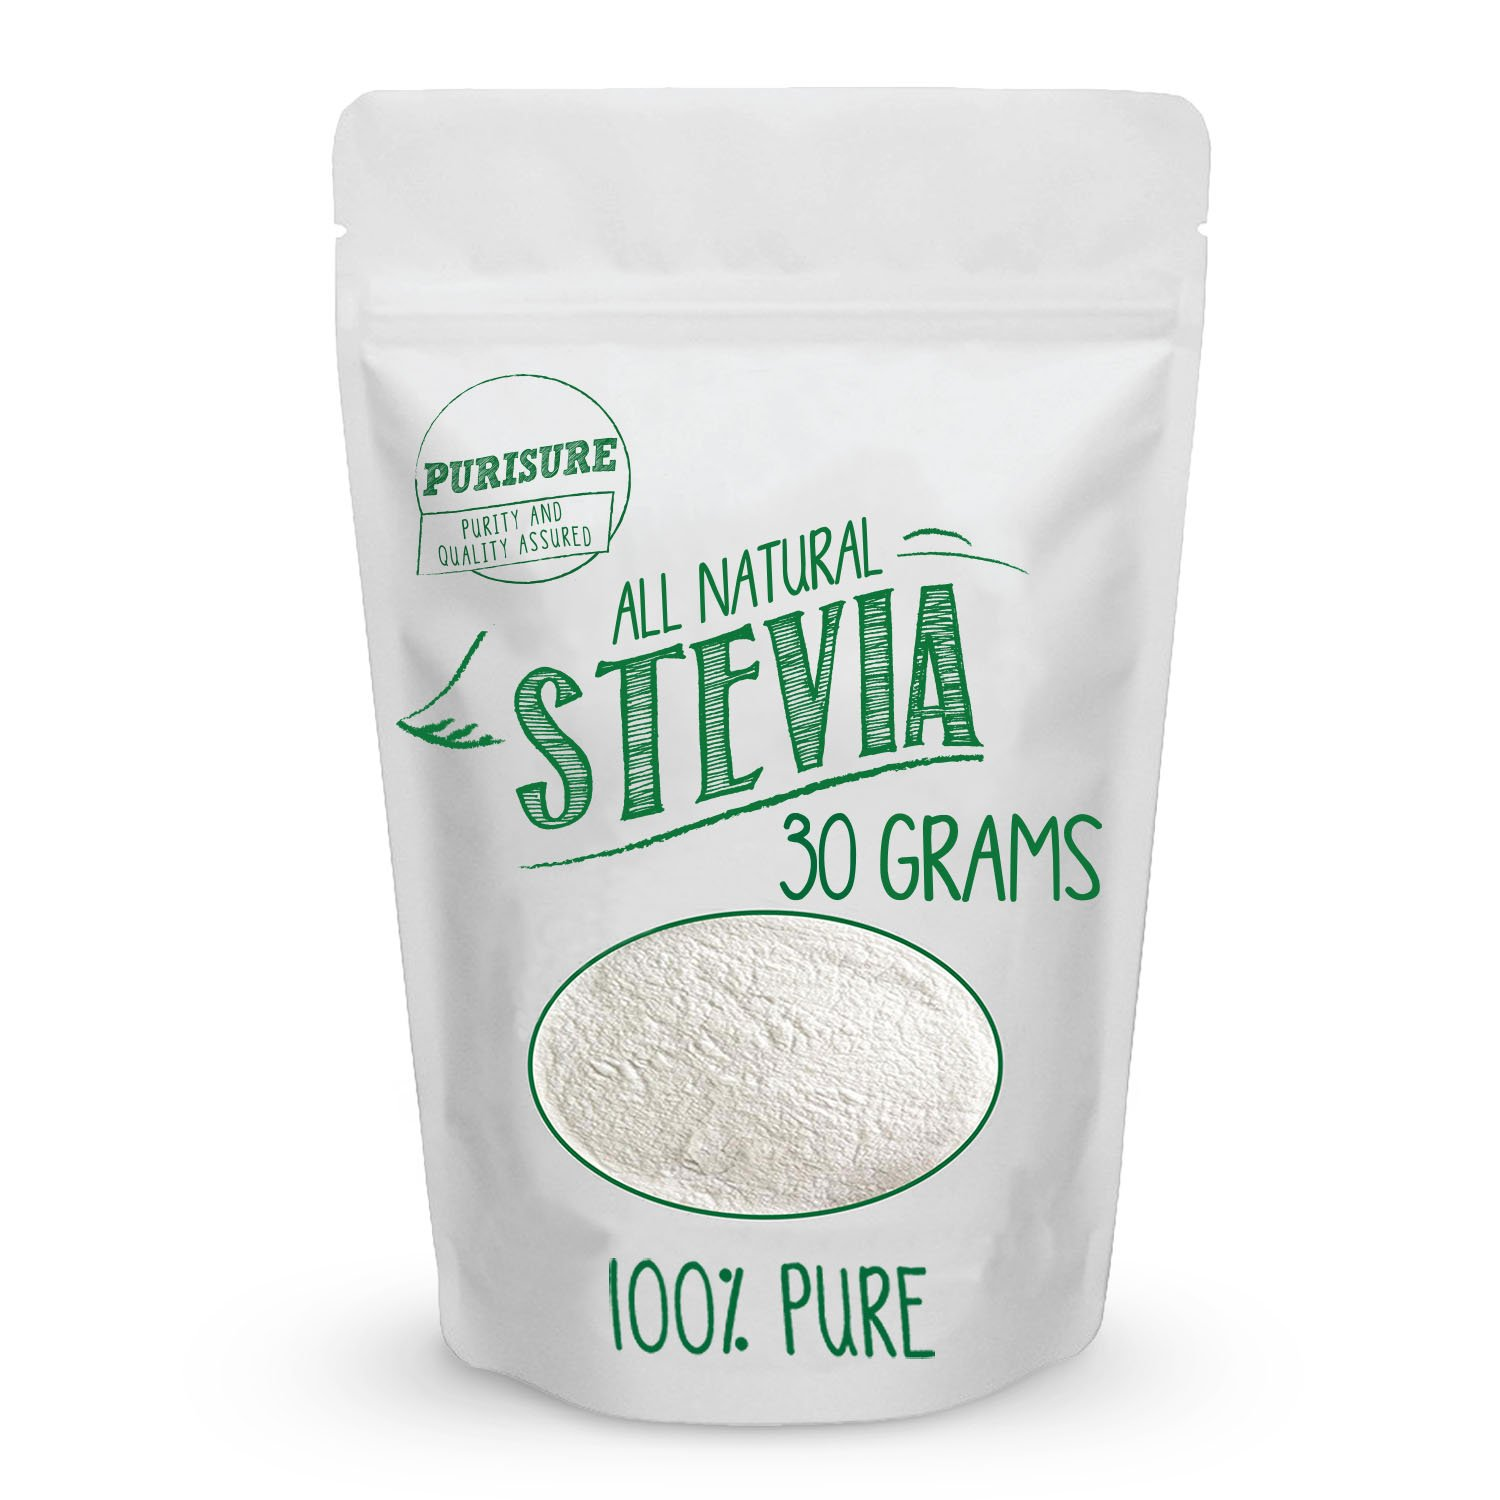 All Natural Stevia Powder 30g (203 Servings) | Highly Concentrated Pure Extract | No Fillers, Additives or Artificial Ingredients | Zero-Calorie Sweetener | Best Sugar Substitute